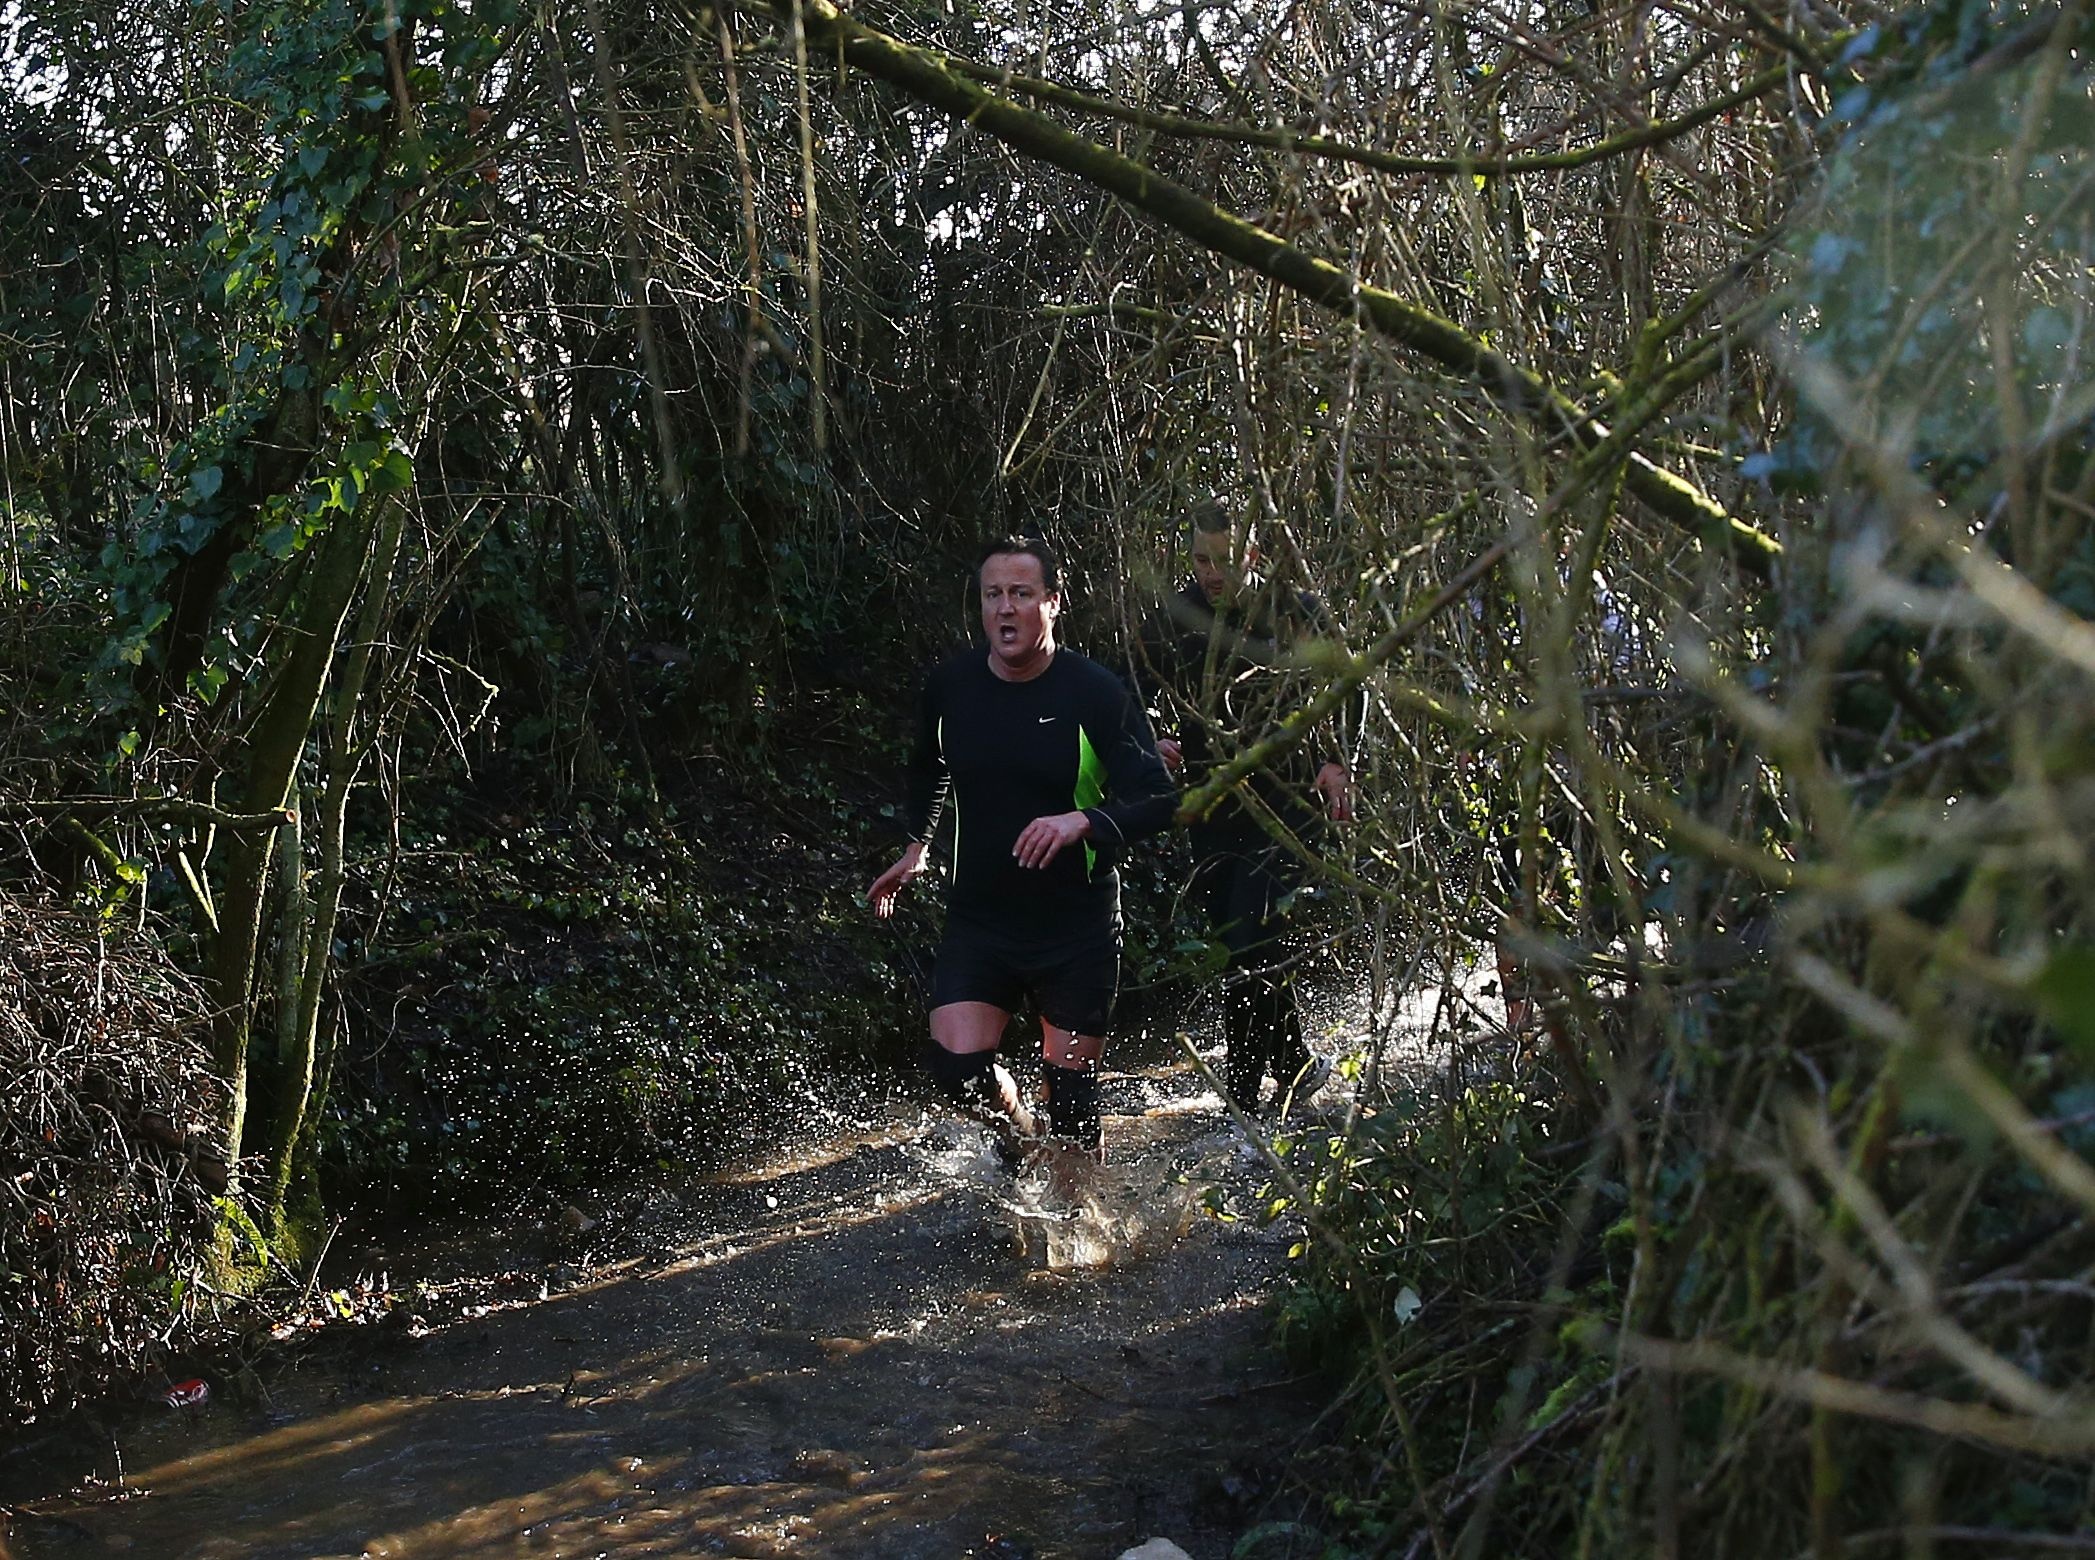 British Prime Minister David Cameron competes in the Great Brook Run.